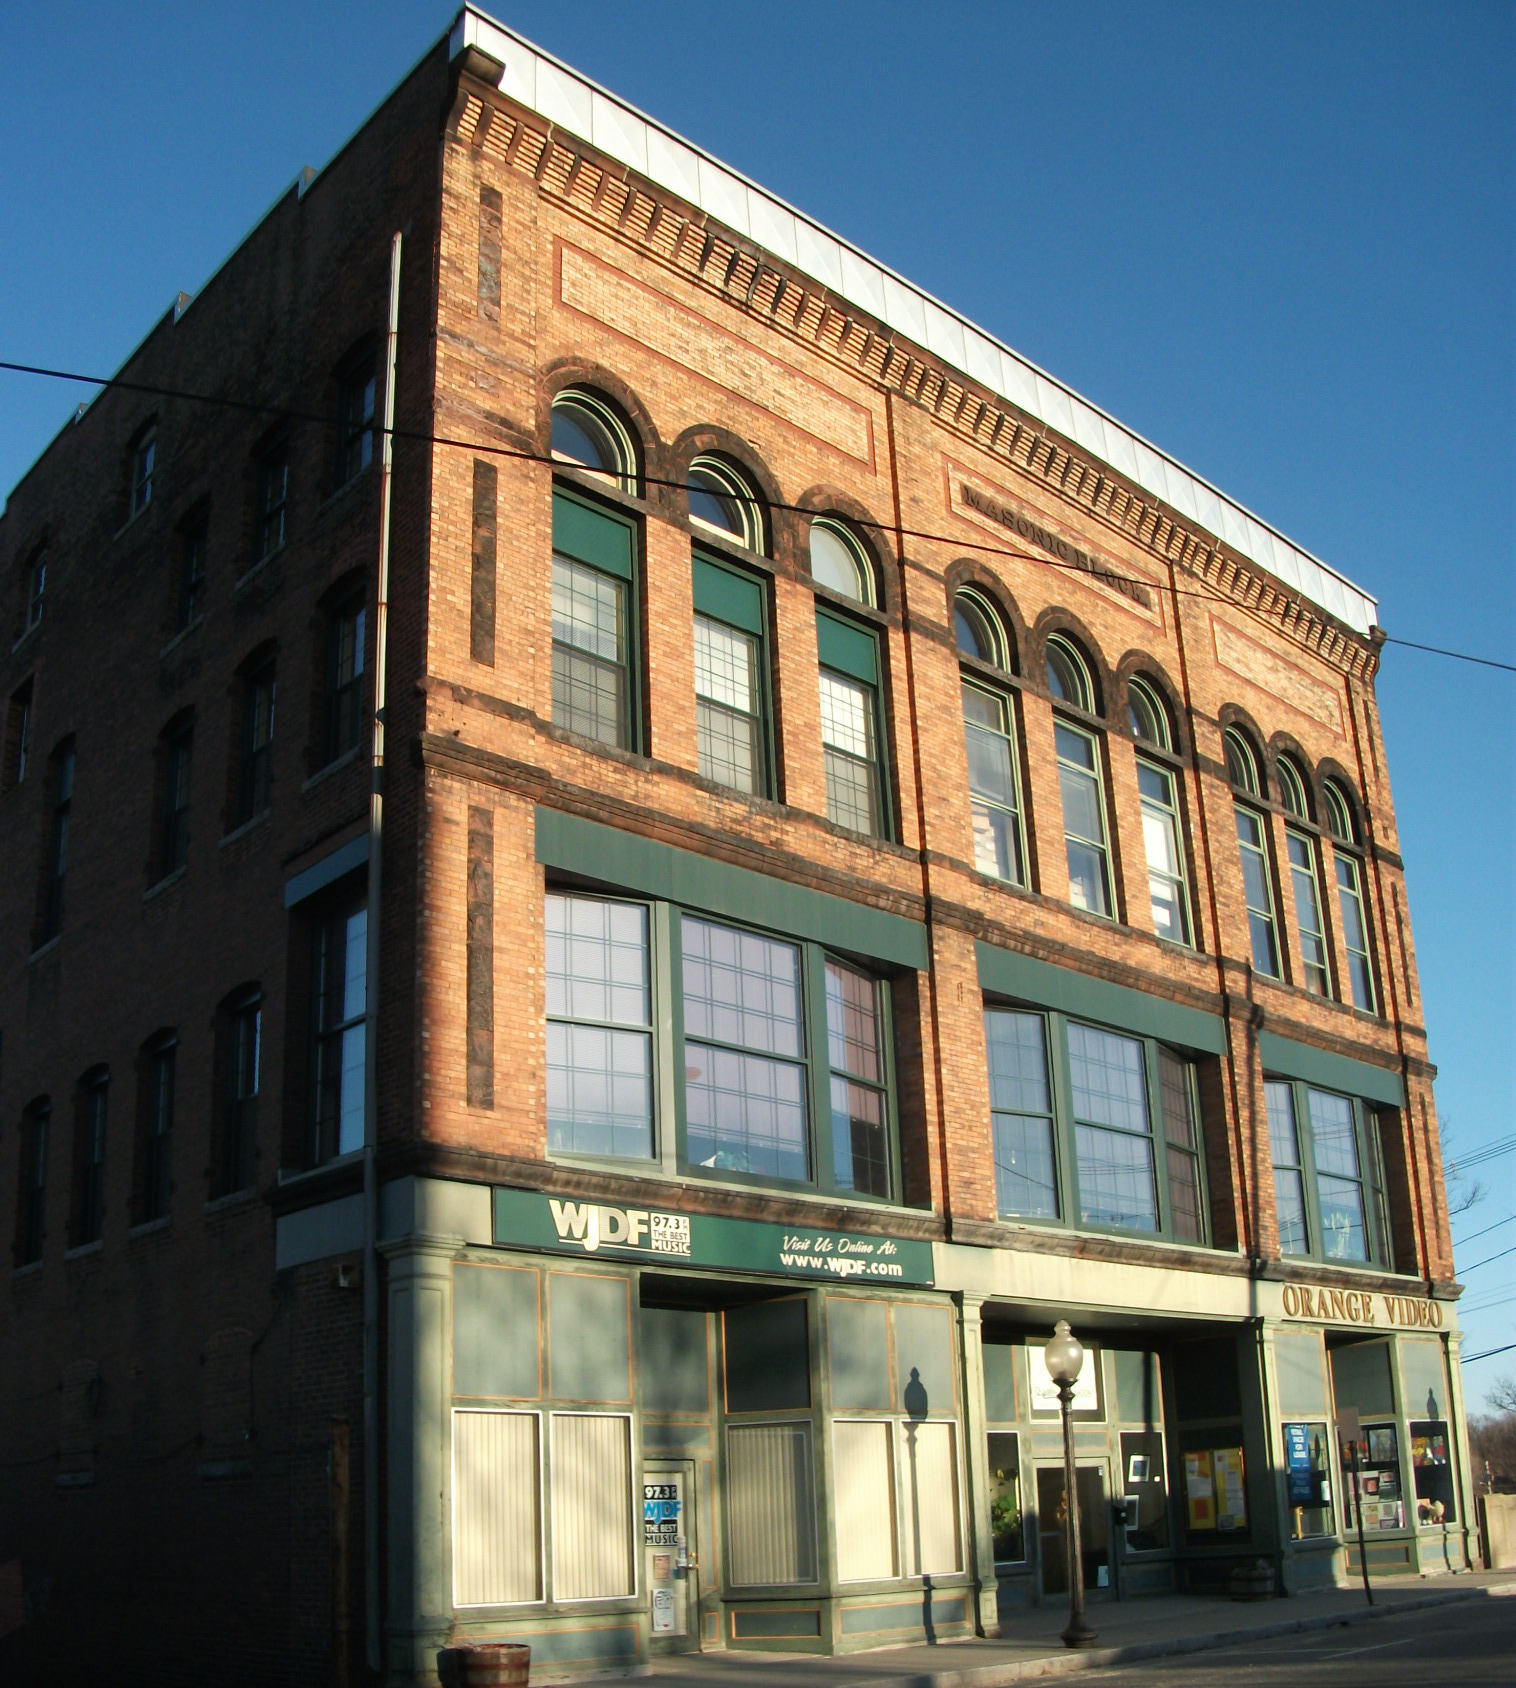 Quabbin Mediation Building in Downtown Orange, with the sun shinning on the façade.